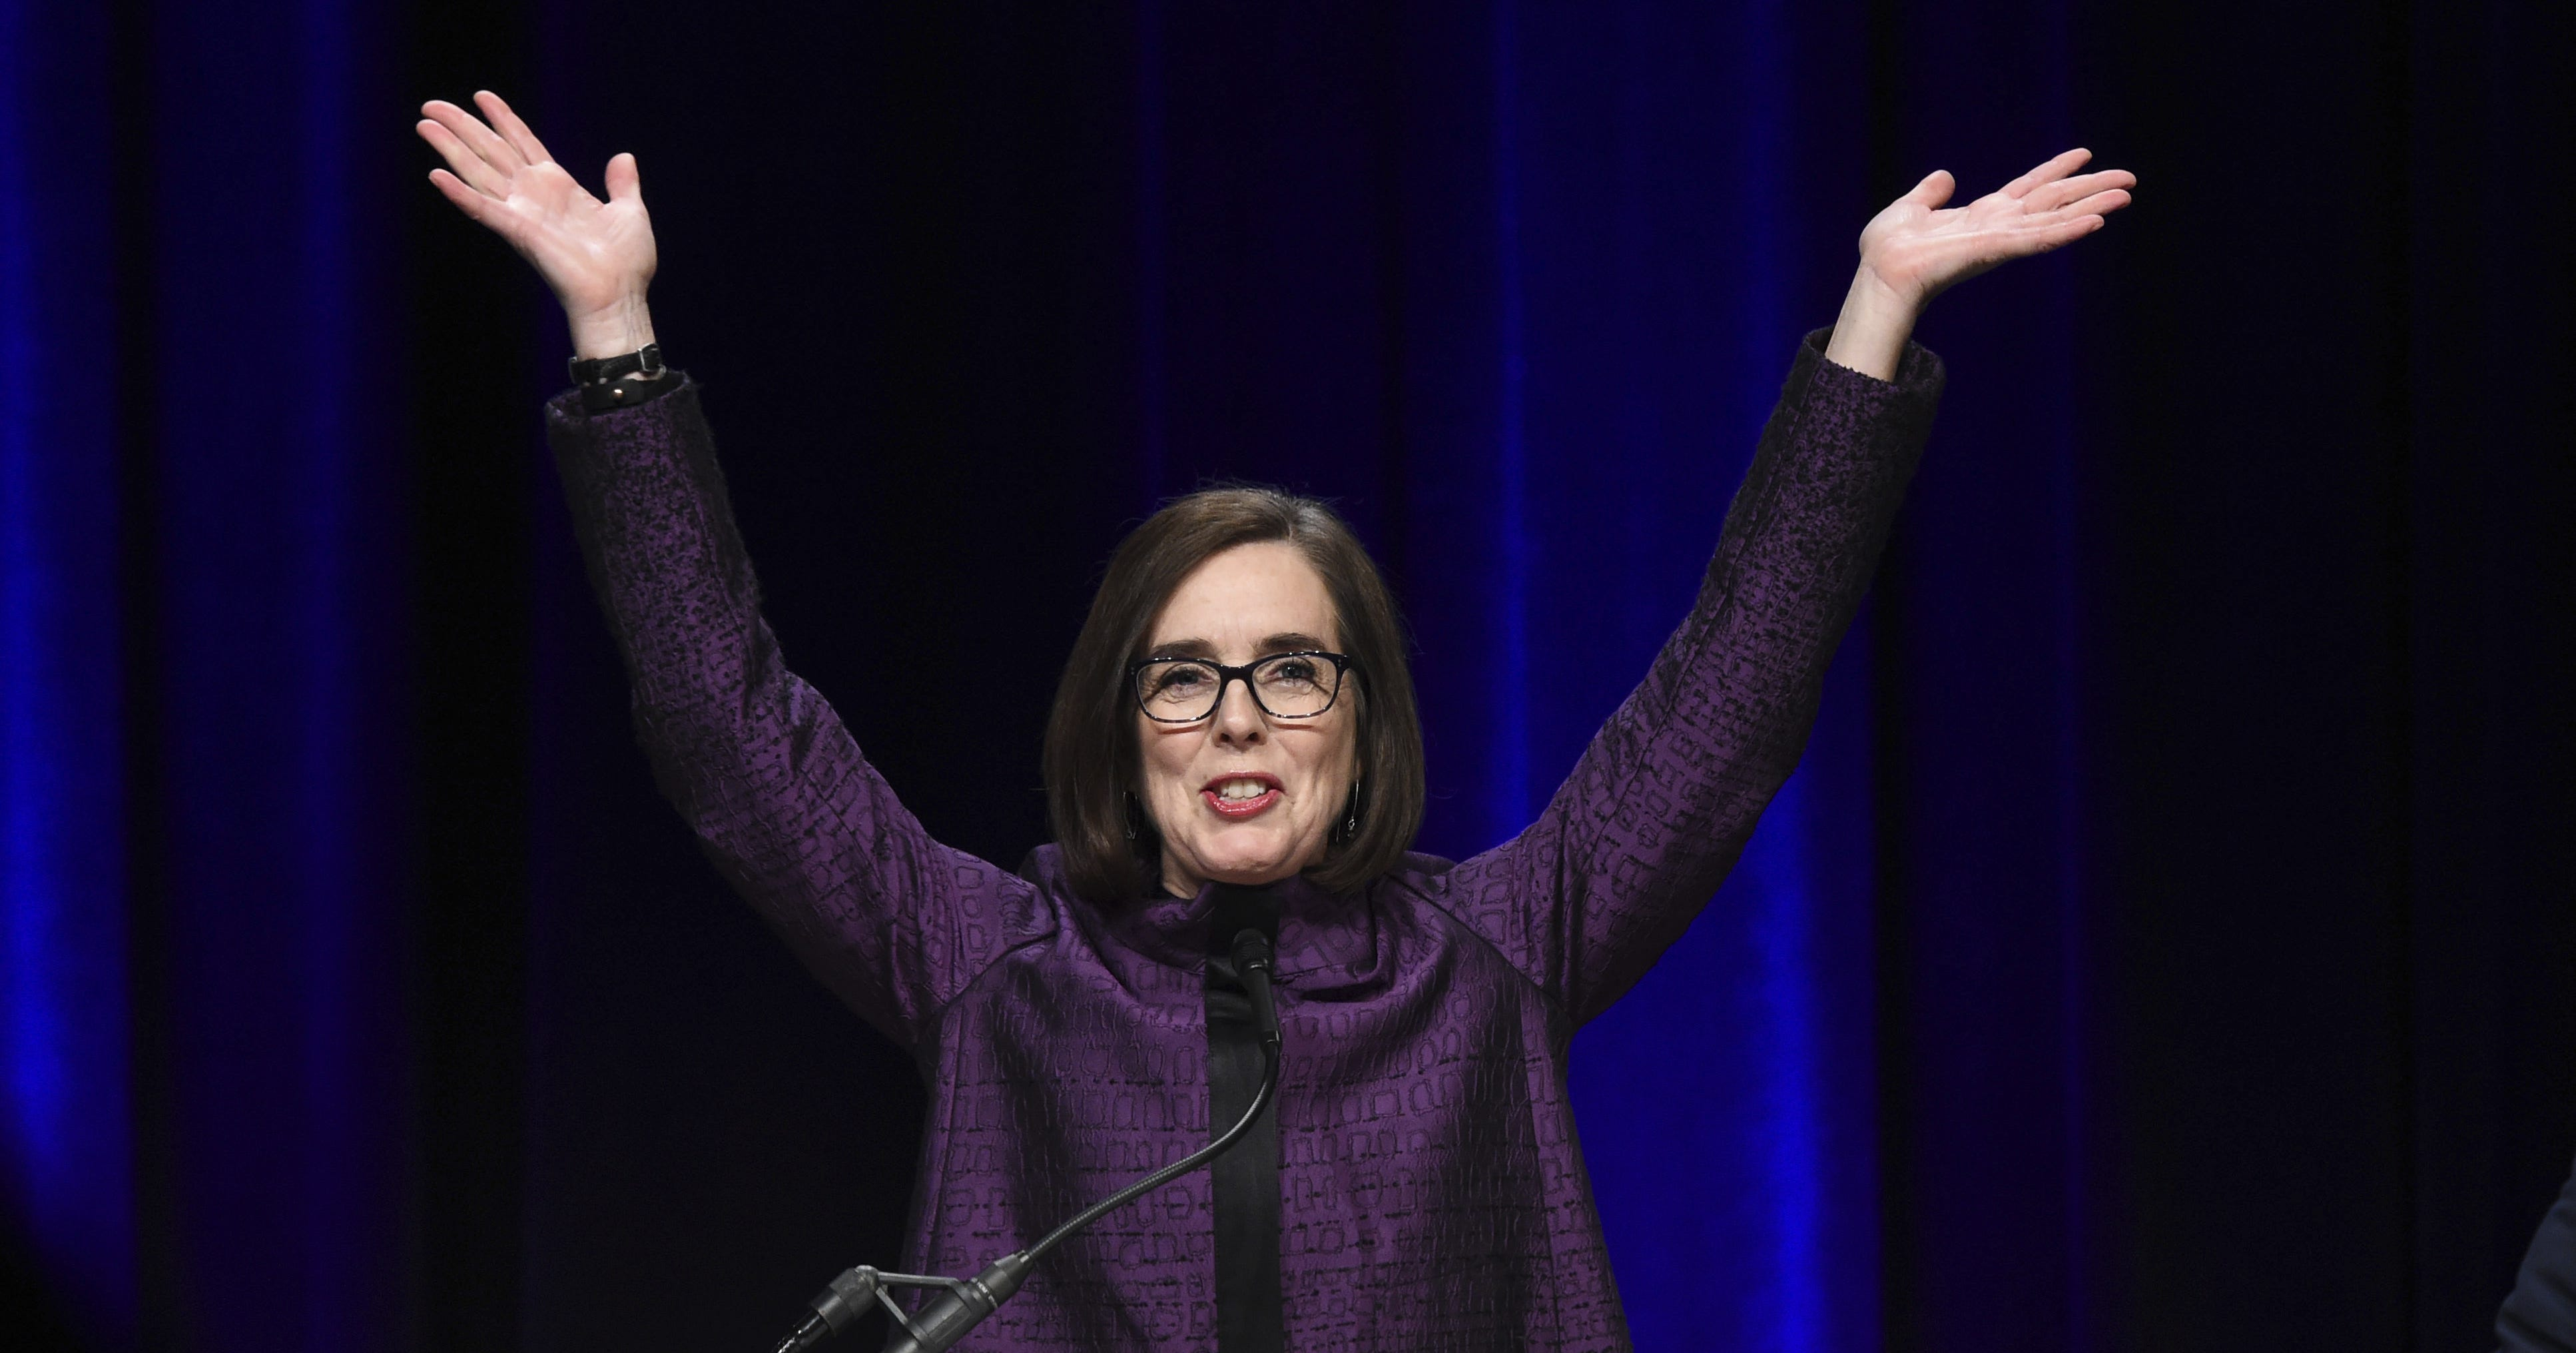 Kate Brown First Openly LGBT Governor Oregon